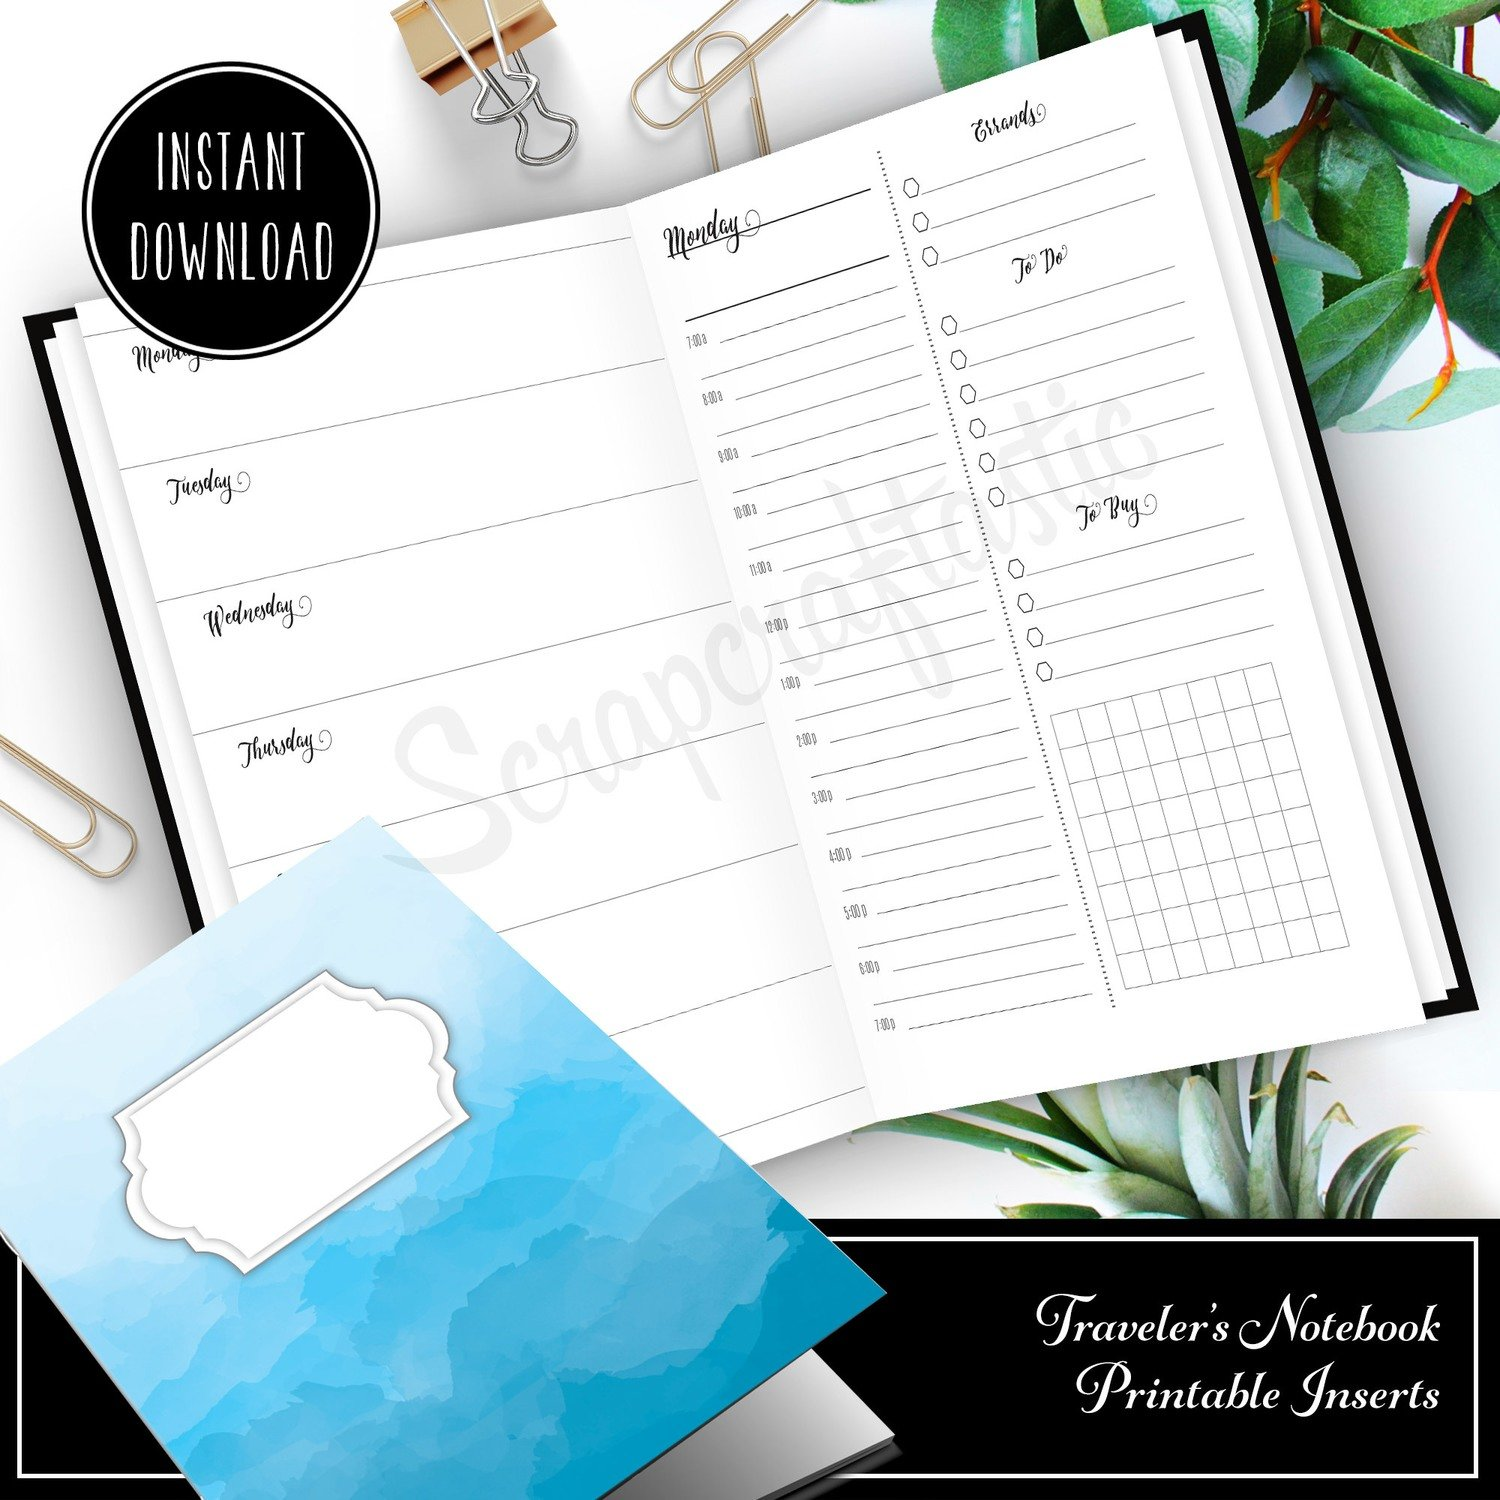 Full Month Notebook: Extended Daily Standard Size Printable Traveler's Notebook Insert with MO2P, WO1P Horizontal and DO1P Daily Schedule Pages